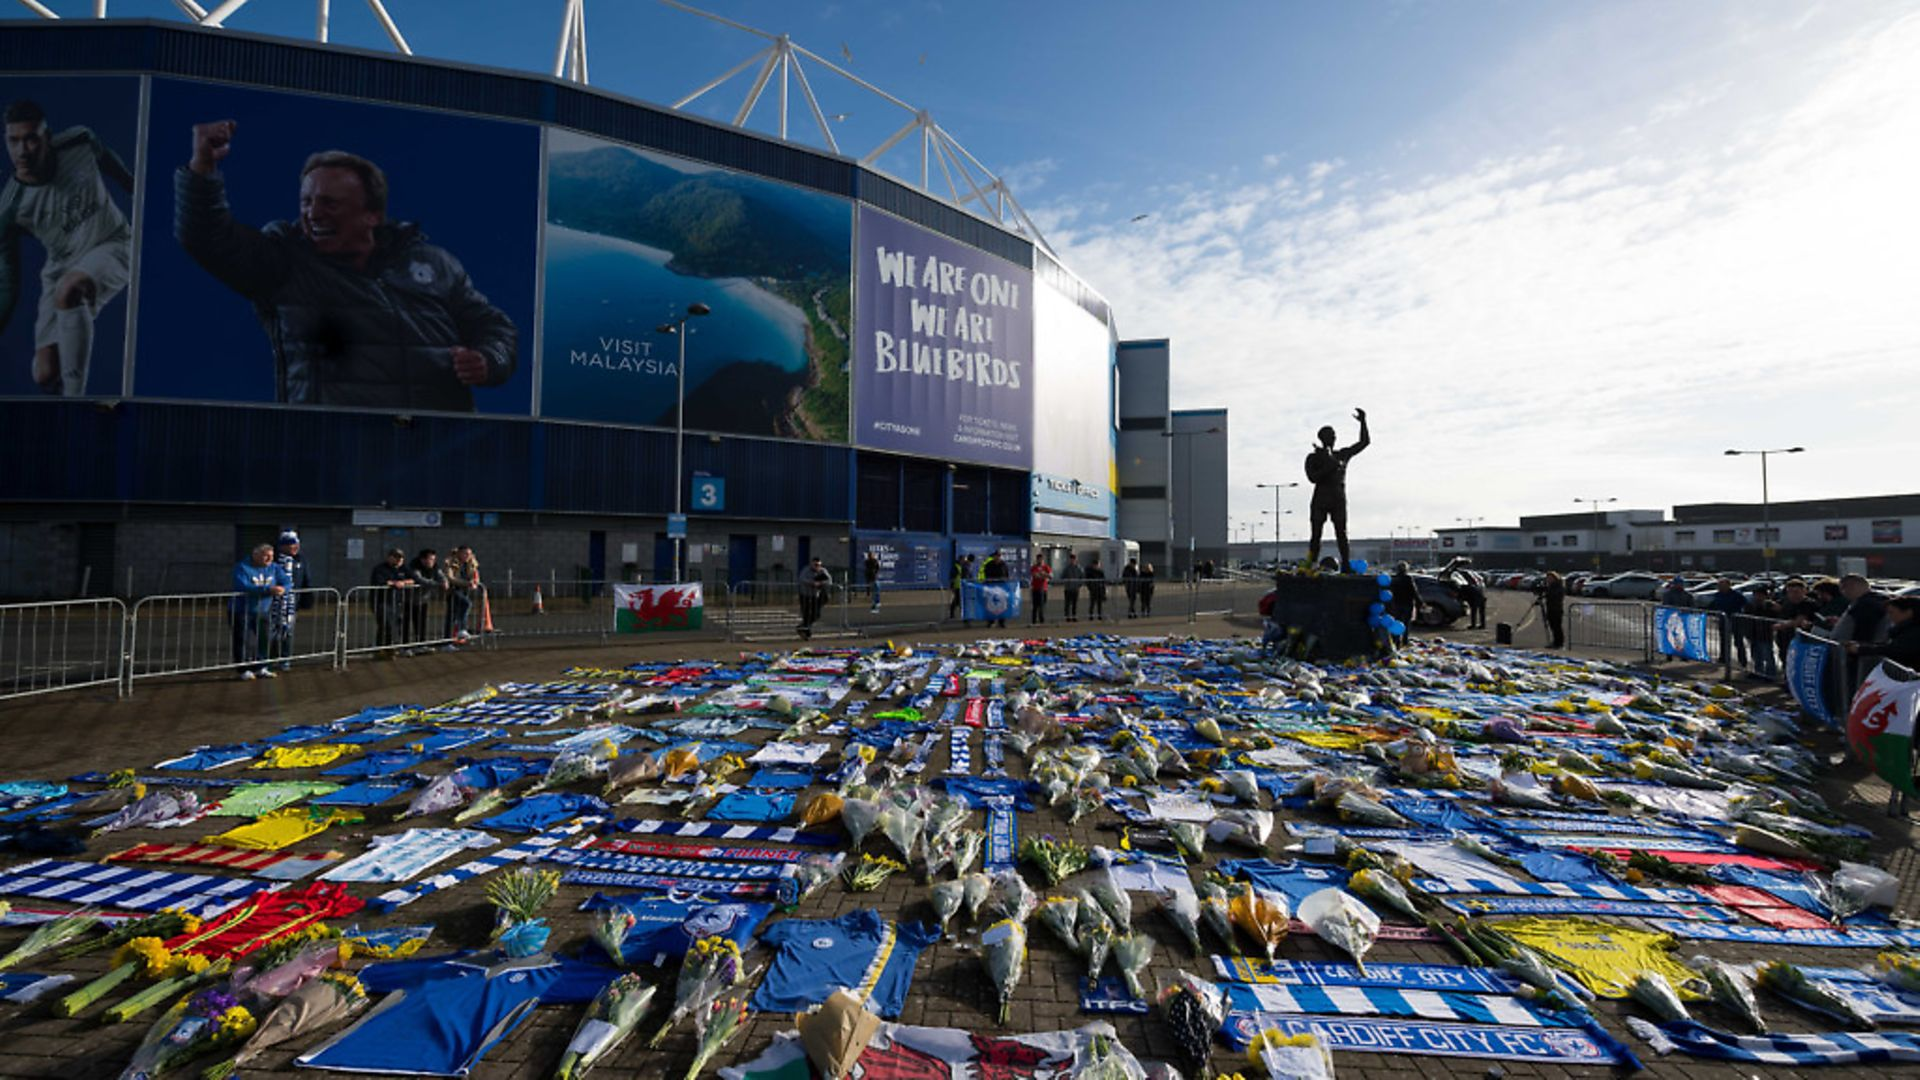 Tributes left to Emiliano Sala at the Cardiff Stadium. Photo: Getty Images - Credit: Getty Images